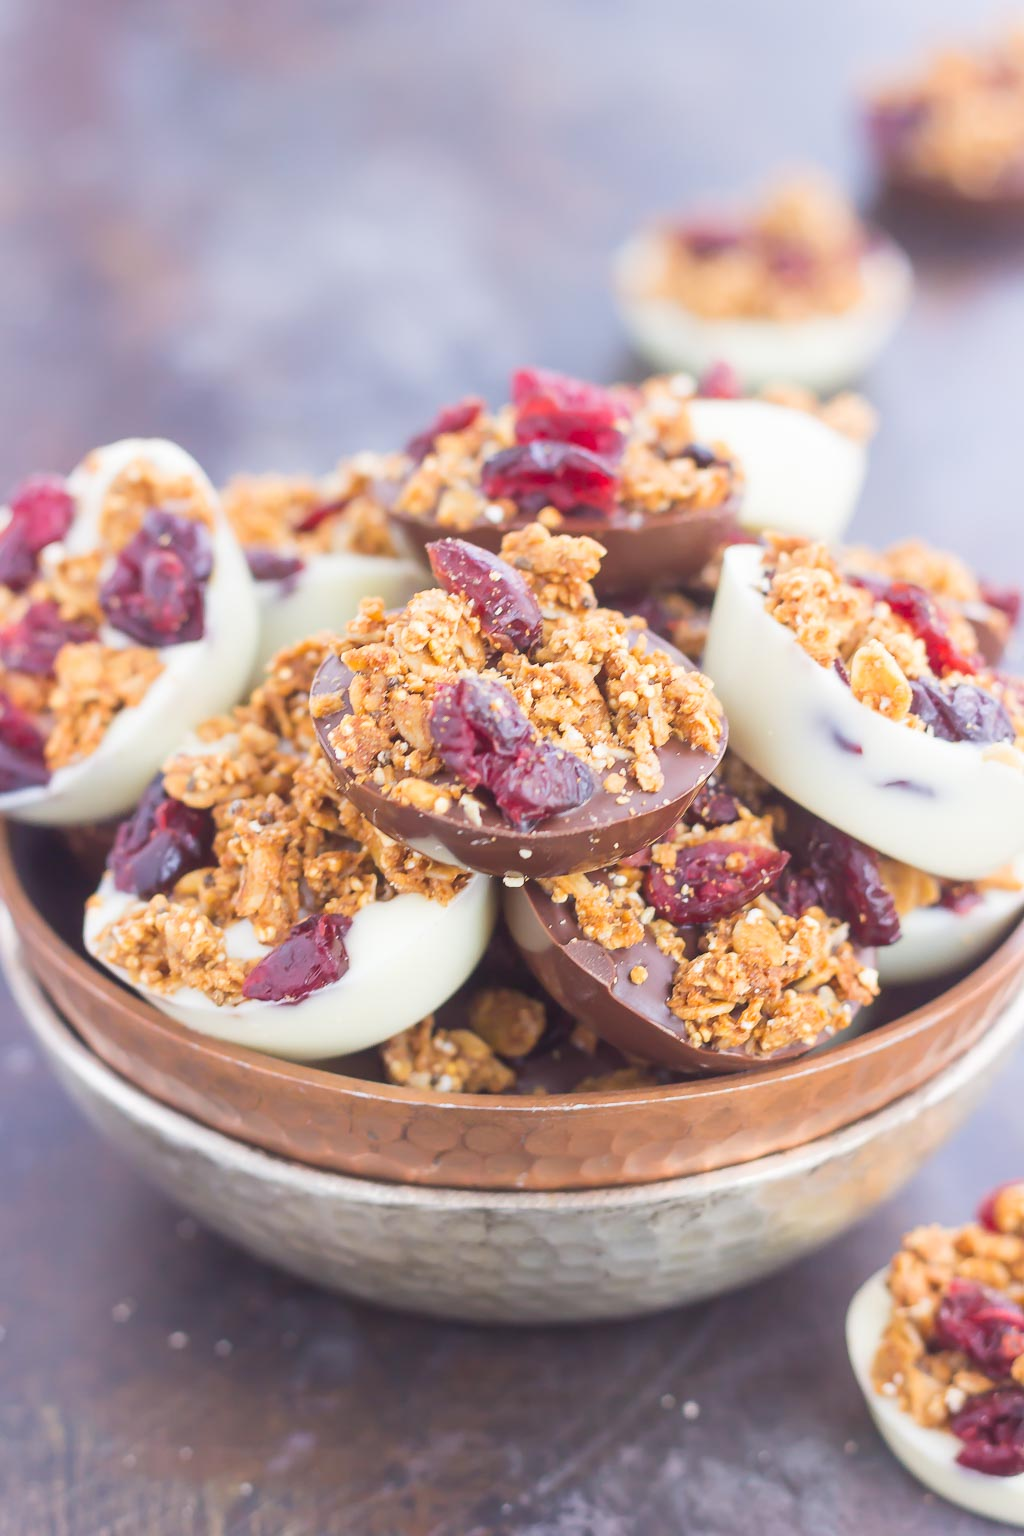 These Chocolate Cherry Granola Cups are the perfect bite for when you want something sweet. Smooth dark chocolate and creamy white chocolate cups are topped with crunchy granola and dried cherries. With no oven needed and ready in minutes, these cups make a delicious dessert or snack!